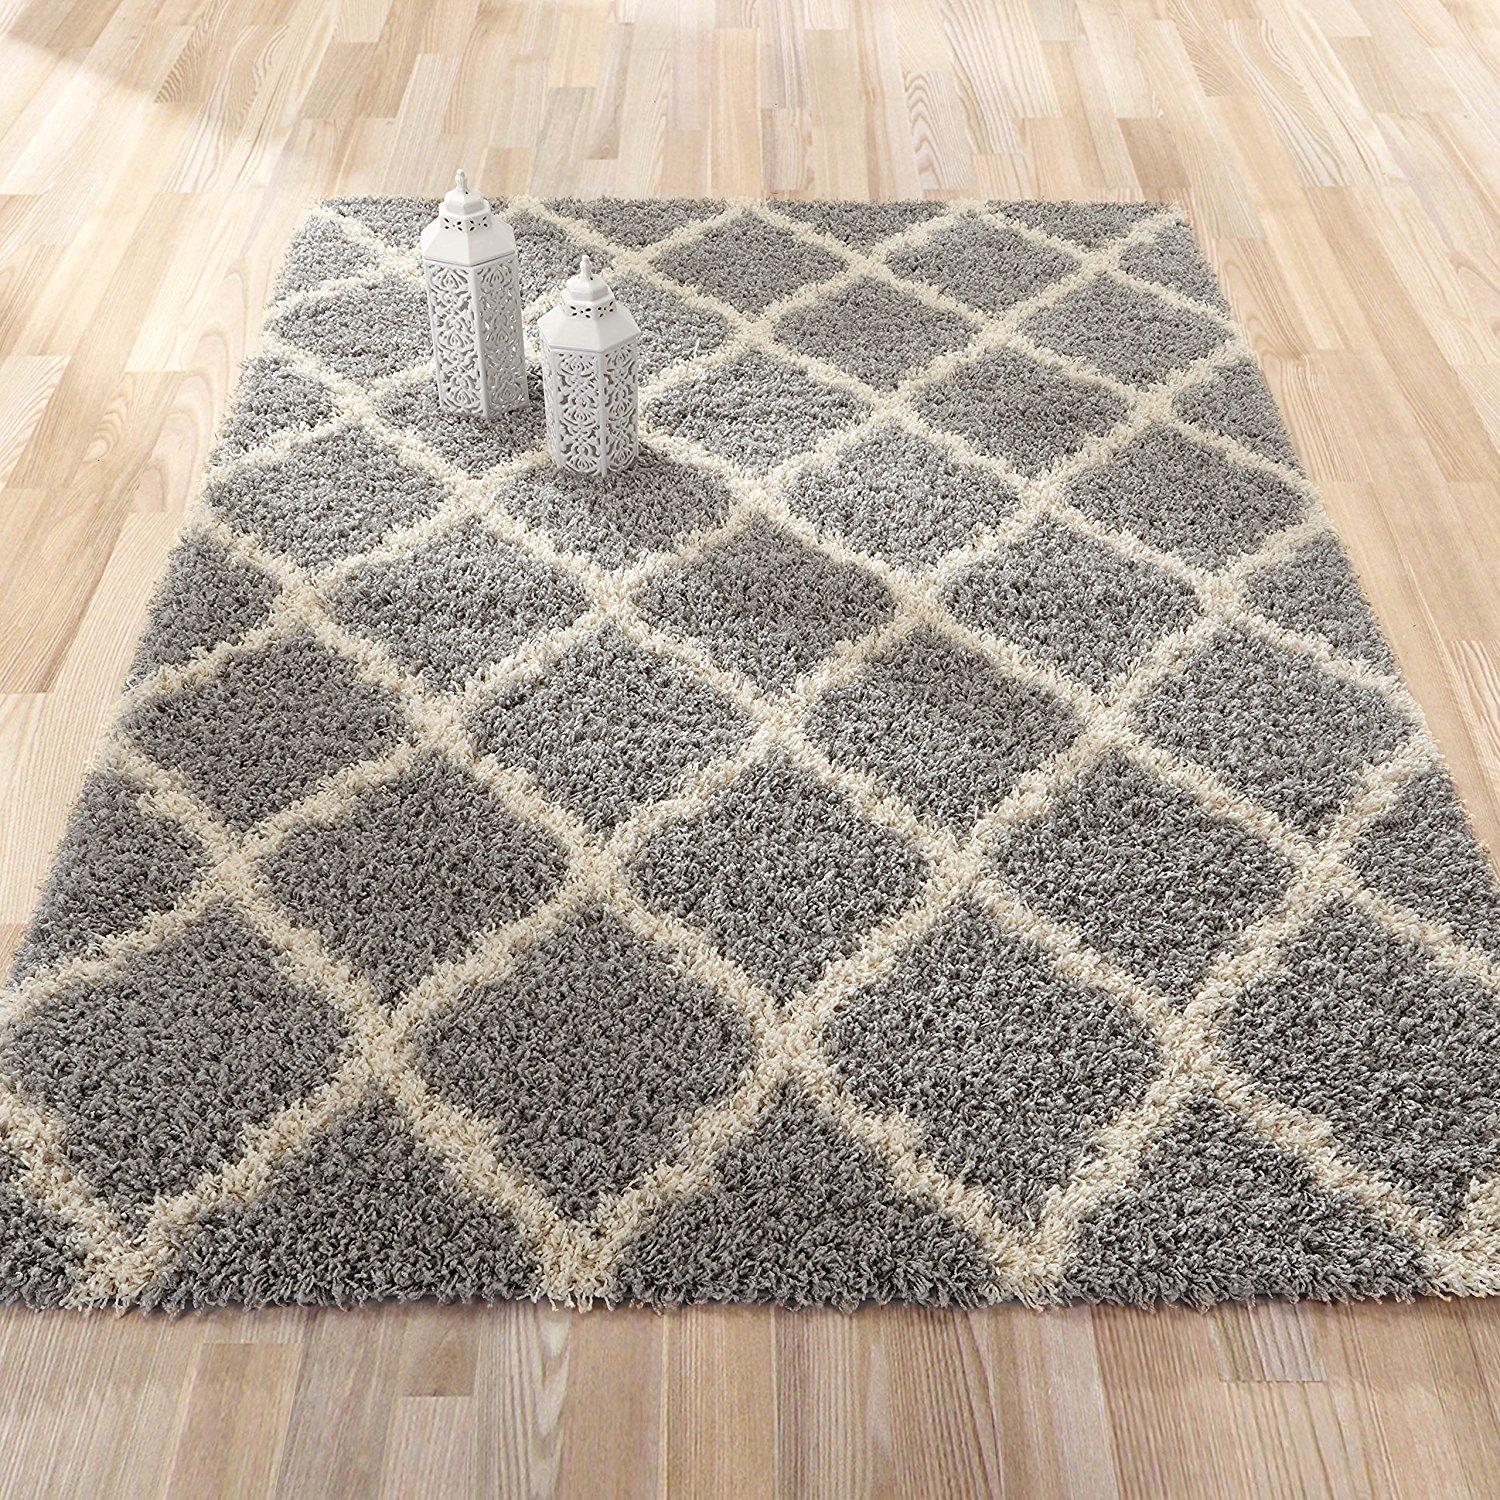 Sweet Home Stores Cozy Shag Collection Moroccan Trellis Design Shag Rug Contemporary Living & Bedroom Soft Shaggy Area Rug,   Grey & Cream,  94'' L x 118'' W by Sweet Home Stores (Image #3)